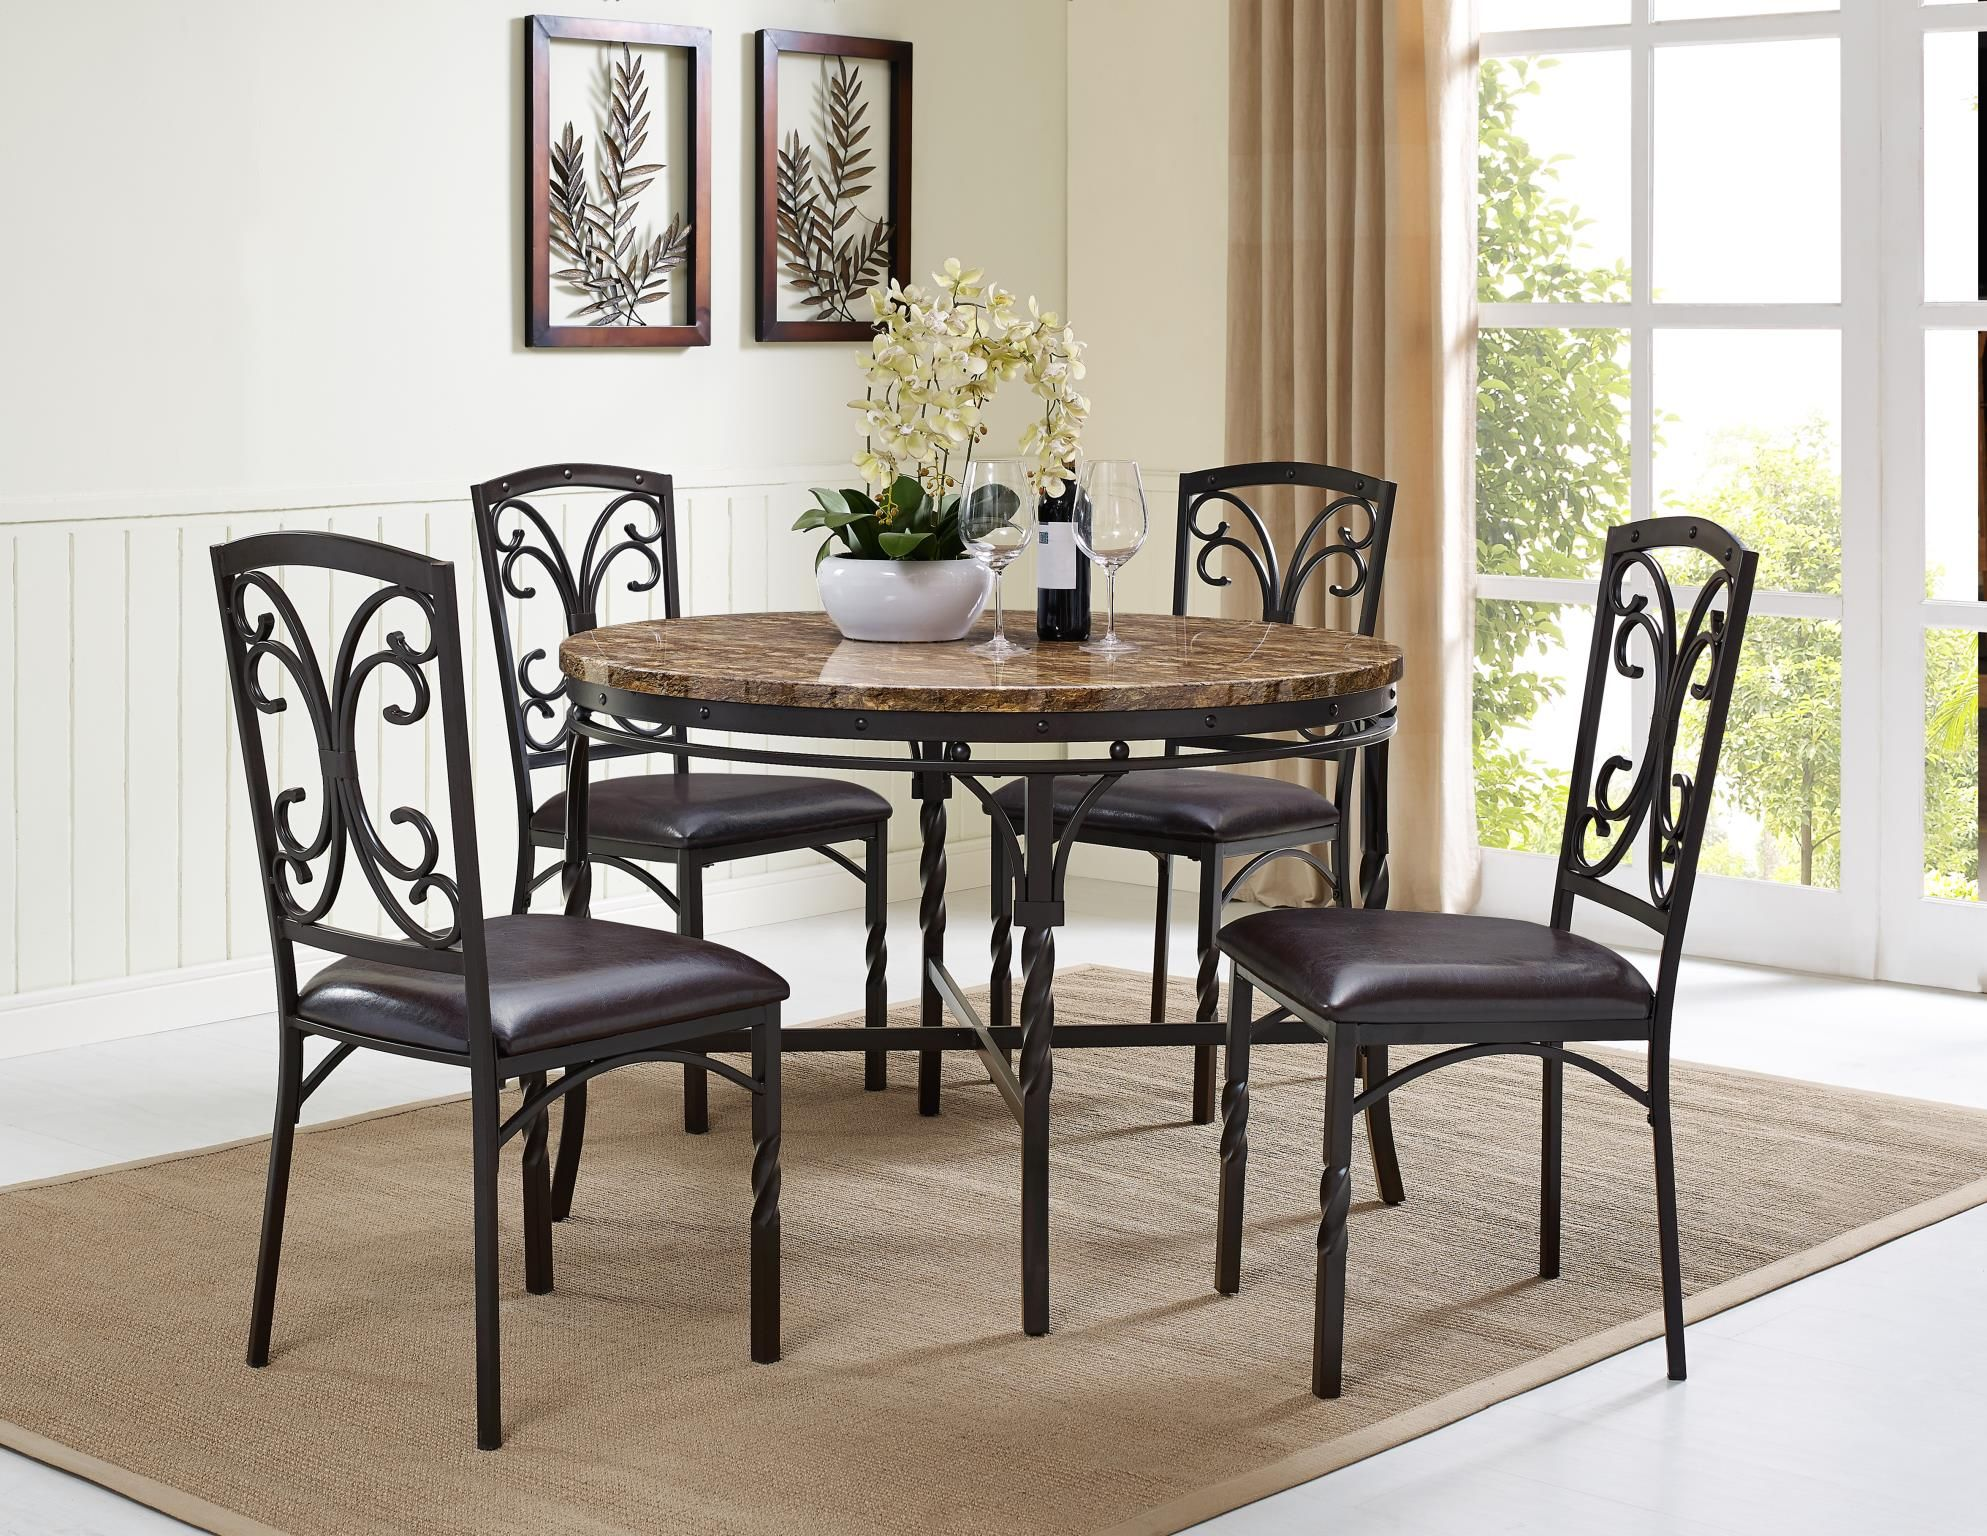 Beautiful Traditional Metal Dining Set Features Forged Twisted Metal Legs And A Faux Marble Top Scro Dining Table Setting Dining Room Sets Casual Dining Table